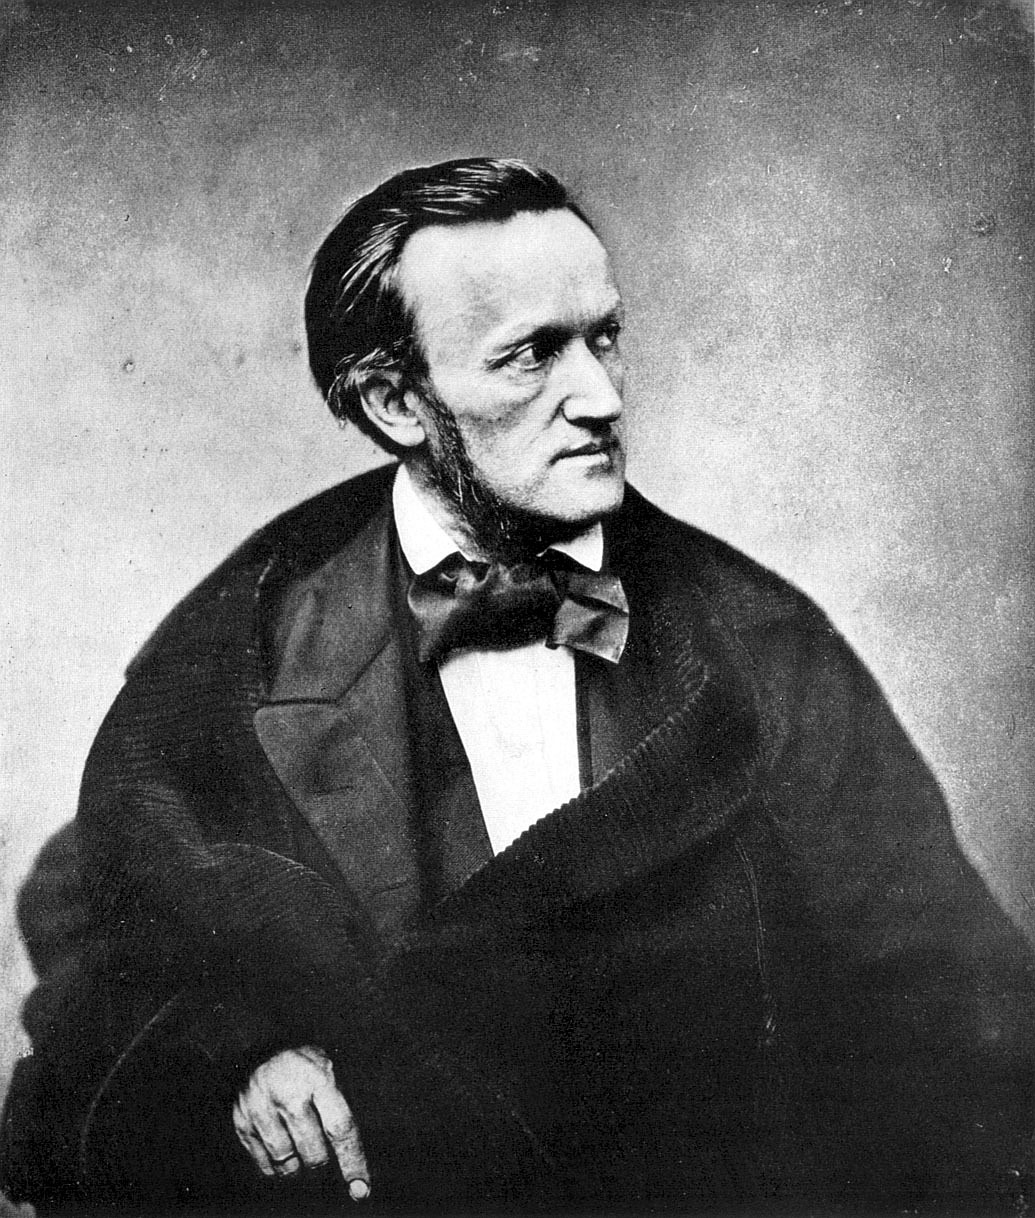 richard wagner composer playwright free photo